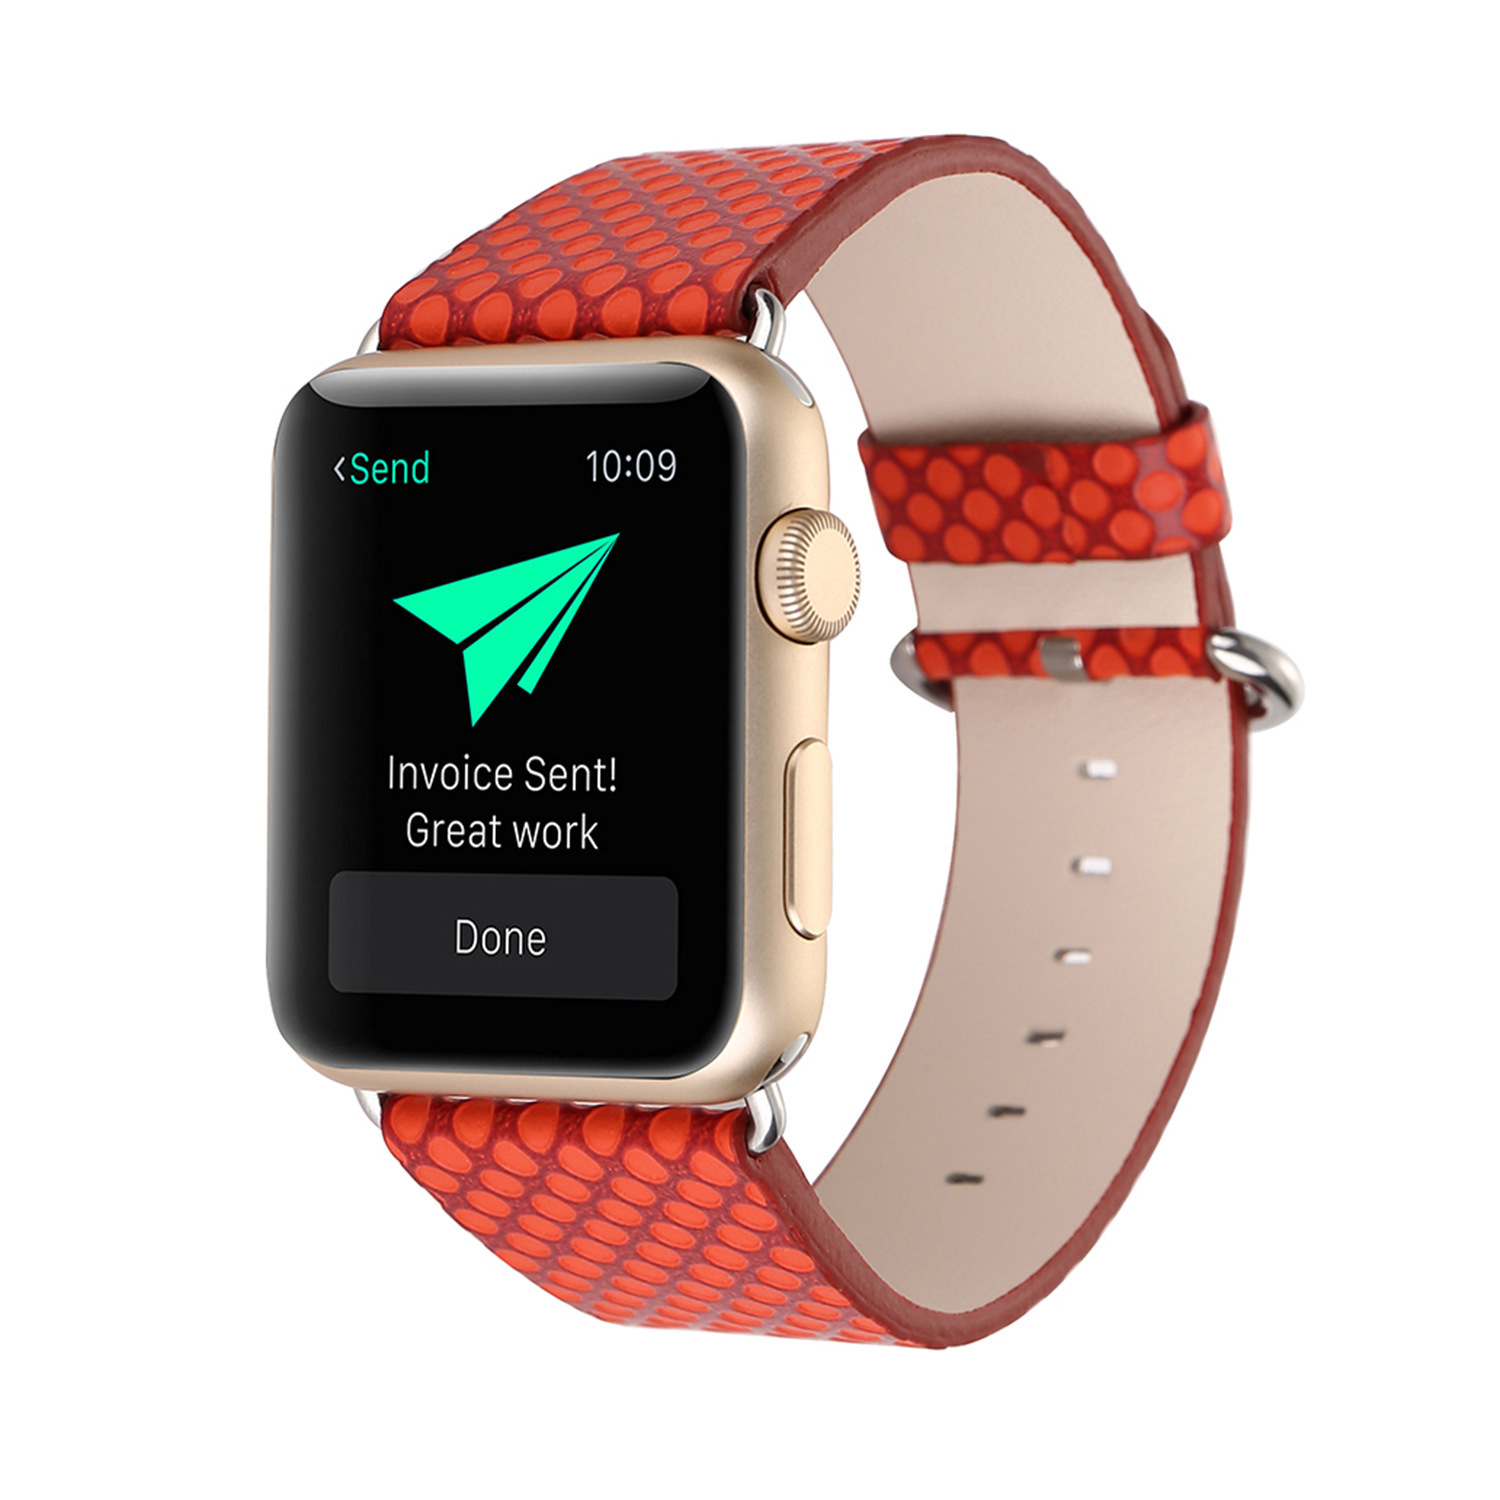 2019 For Apple Fashion Polka Dot Leather Watch Strap IWatch Watch Strap APPLE Wtach Watch Strap